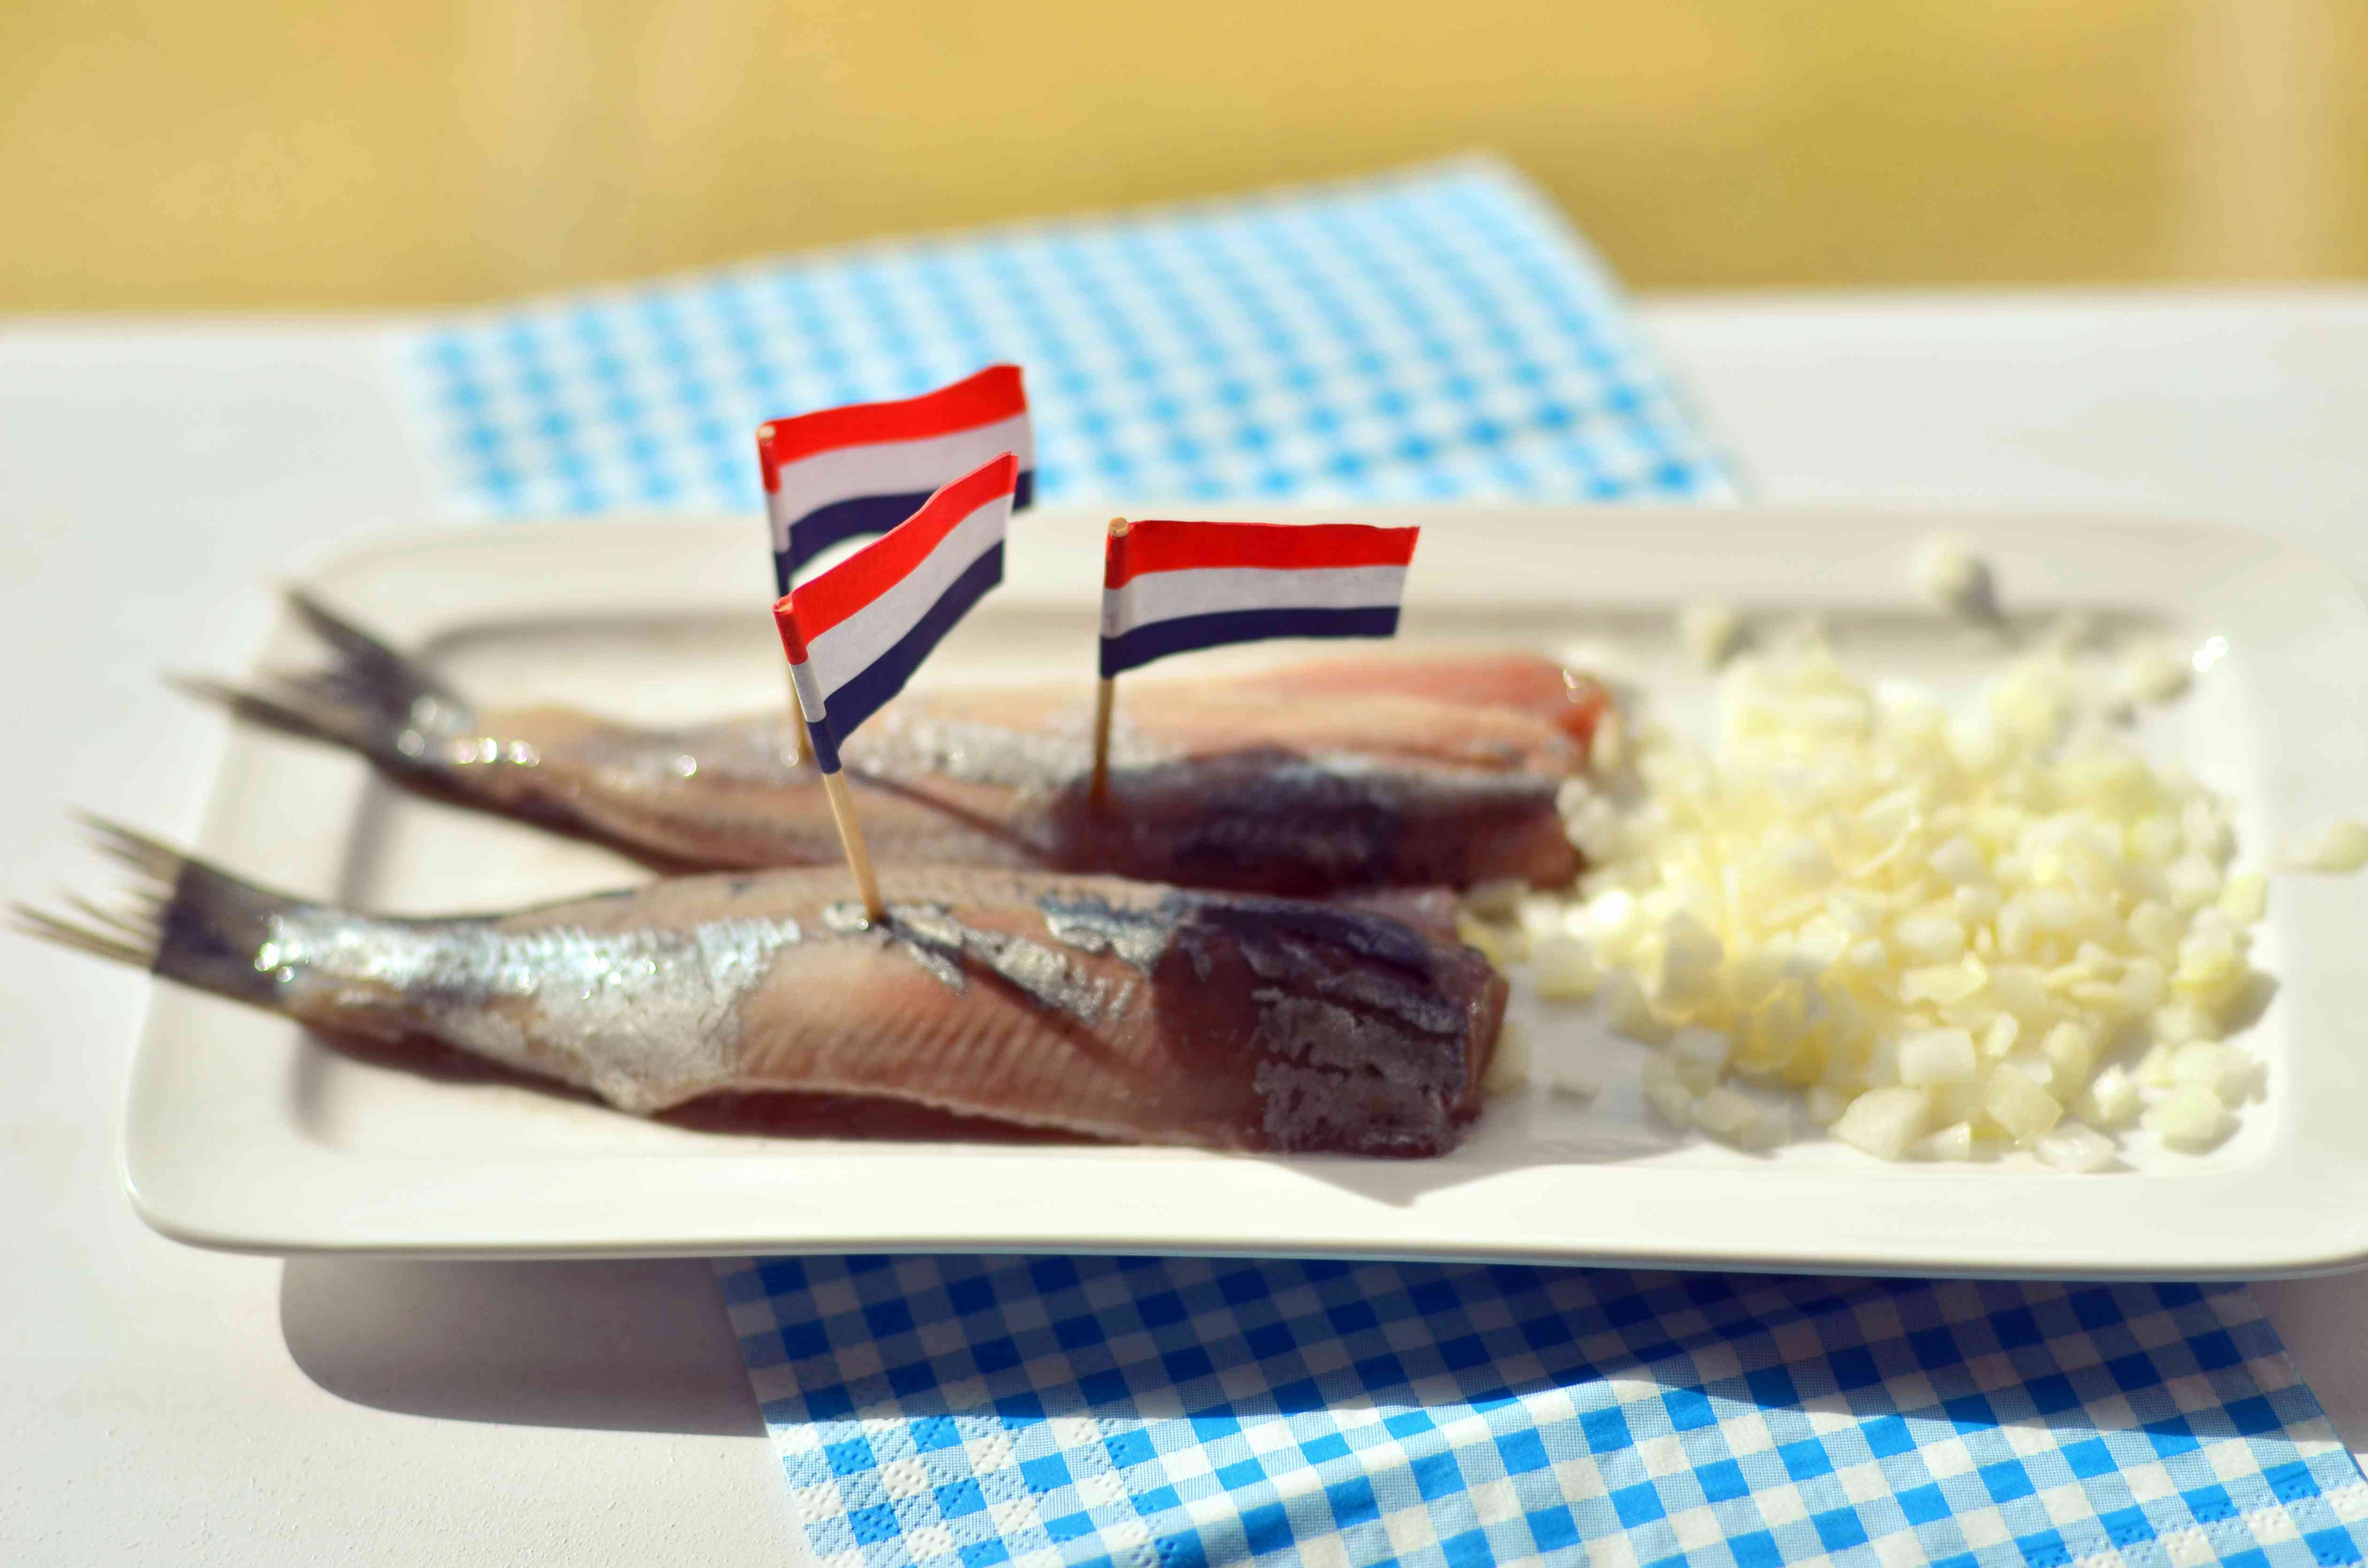 two halves of raw, fresh herring on a plate with diced onion. The herring closer to the camera has one dutch flag toothpick in it and the herring farther away has two dutch flag toothpicks